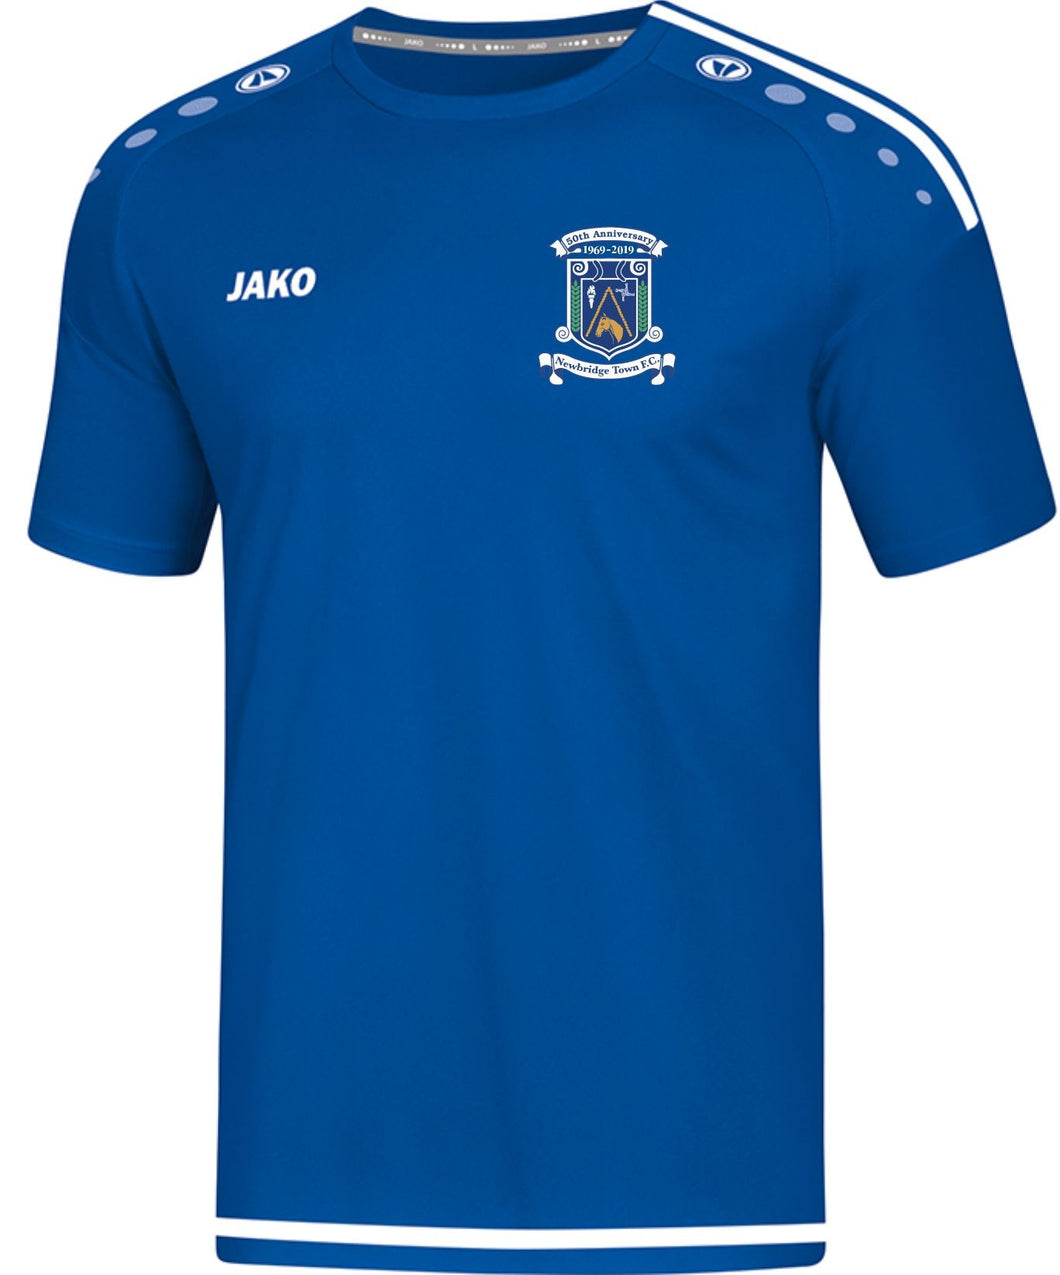 KIDS JAKO NEWBRIDGE TOWN FC TSHIRT NT4219K ROYAL